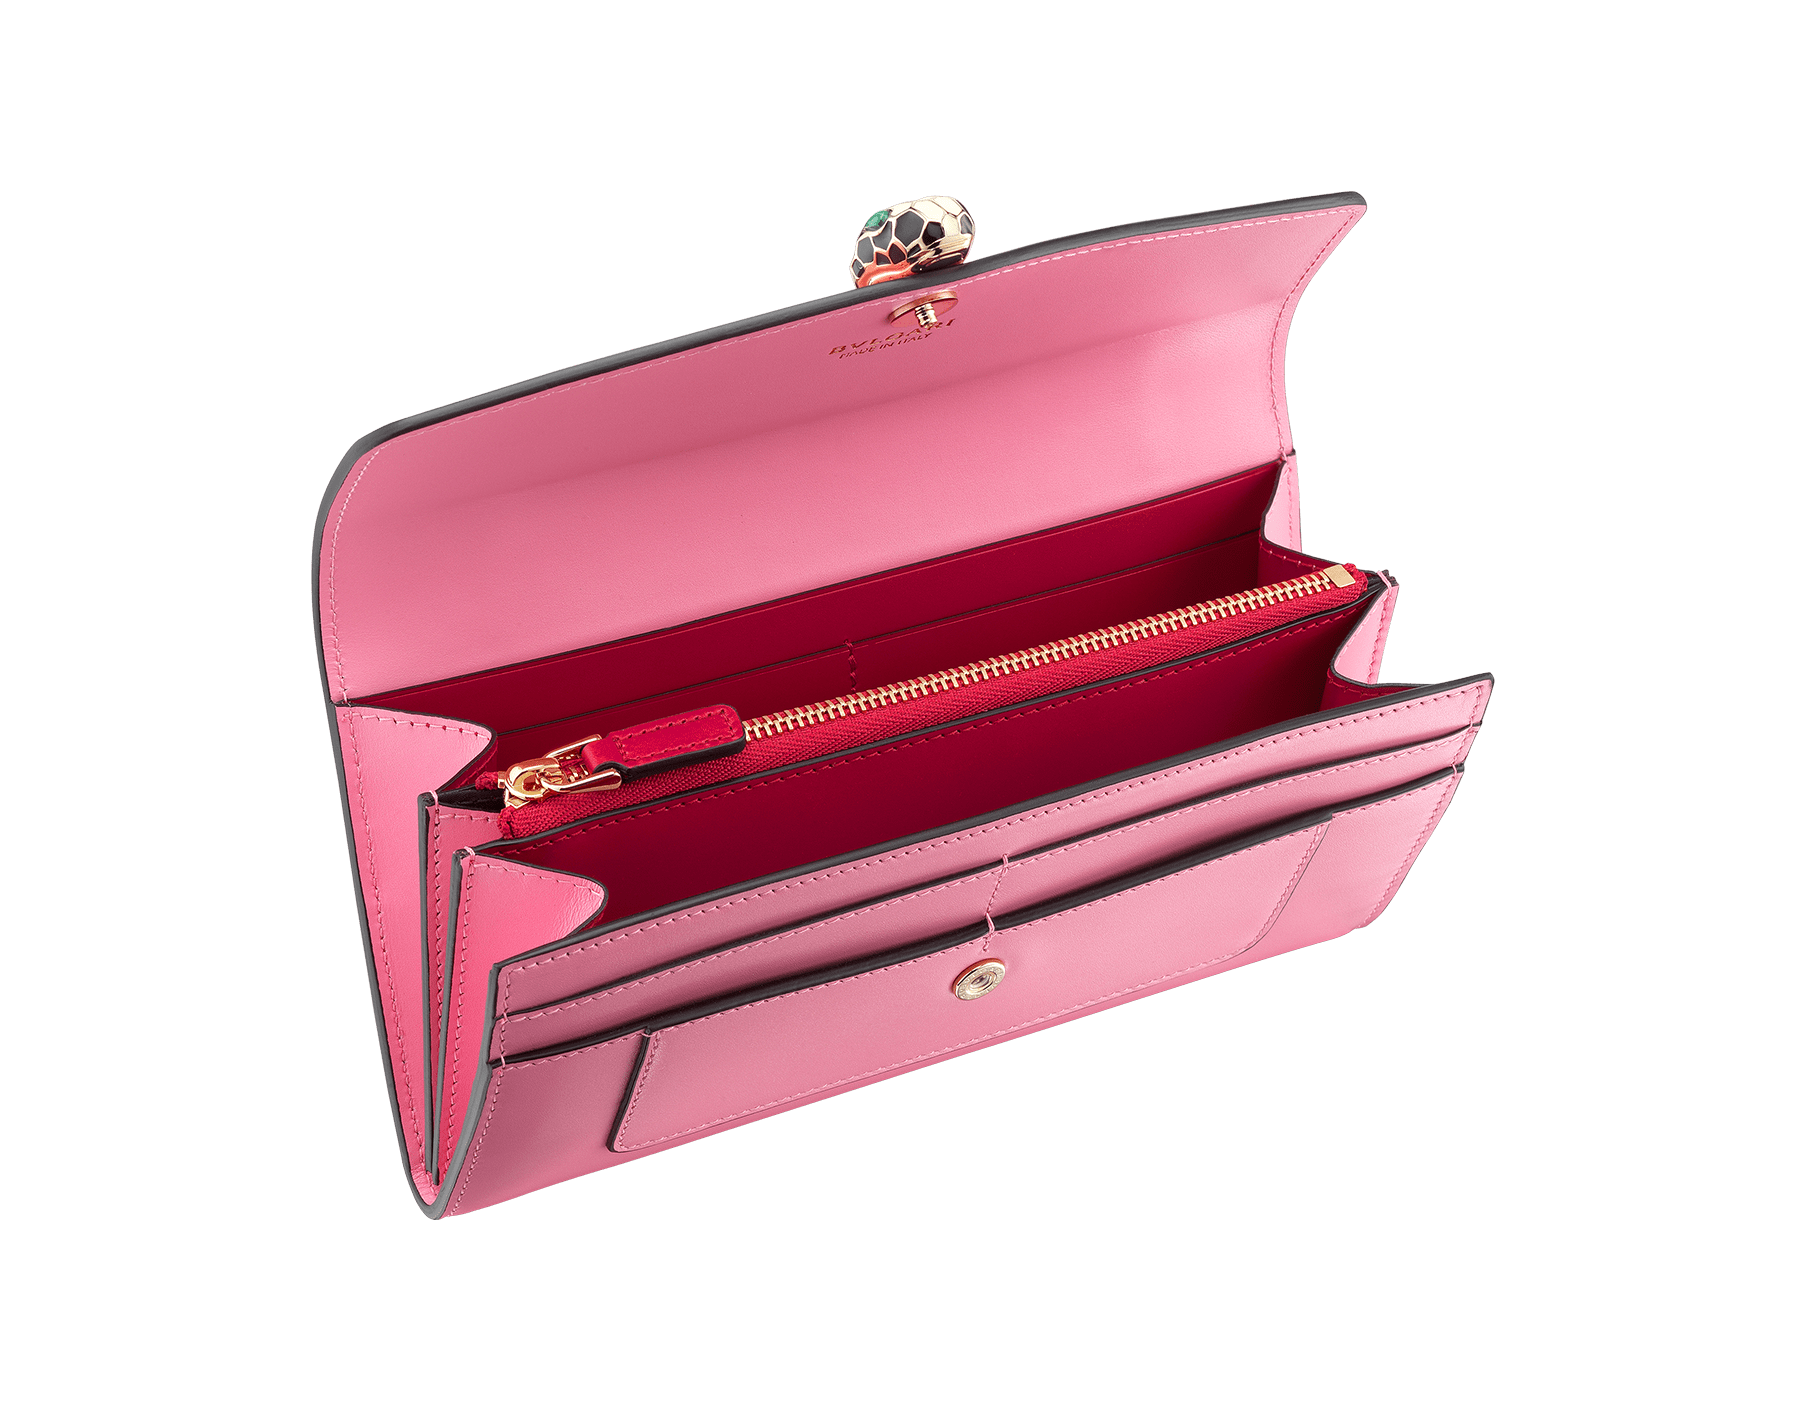 Serpenti Forever wallet pochette in candy quartz and carmine jasper calf leather. Iconic snakehead stud closure in black and white enamel, with green malachite eyes 287147 image 2